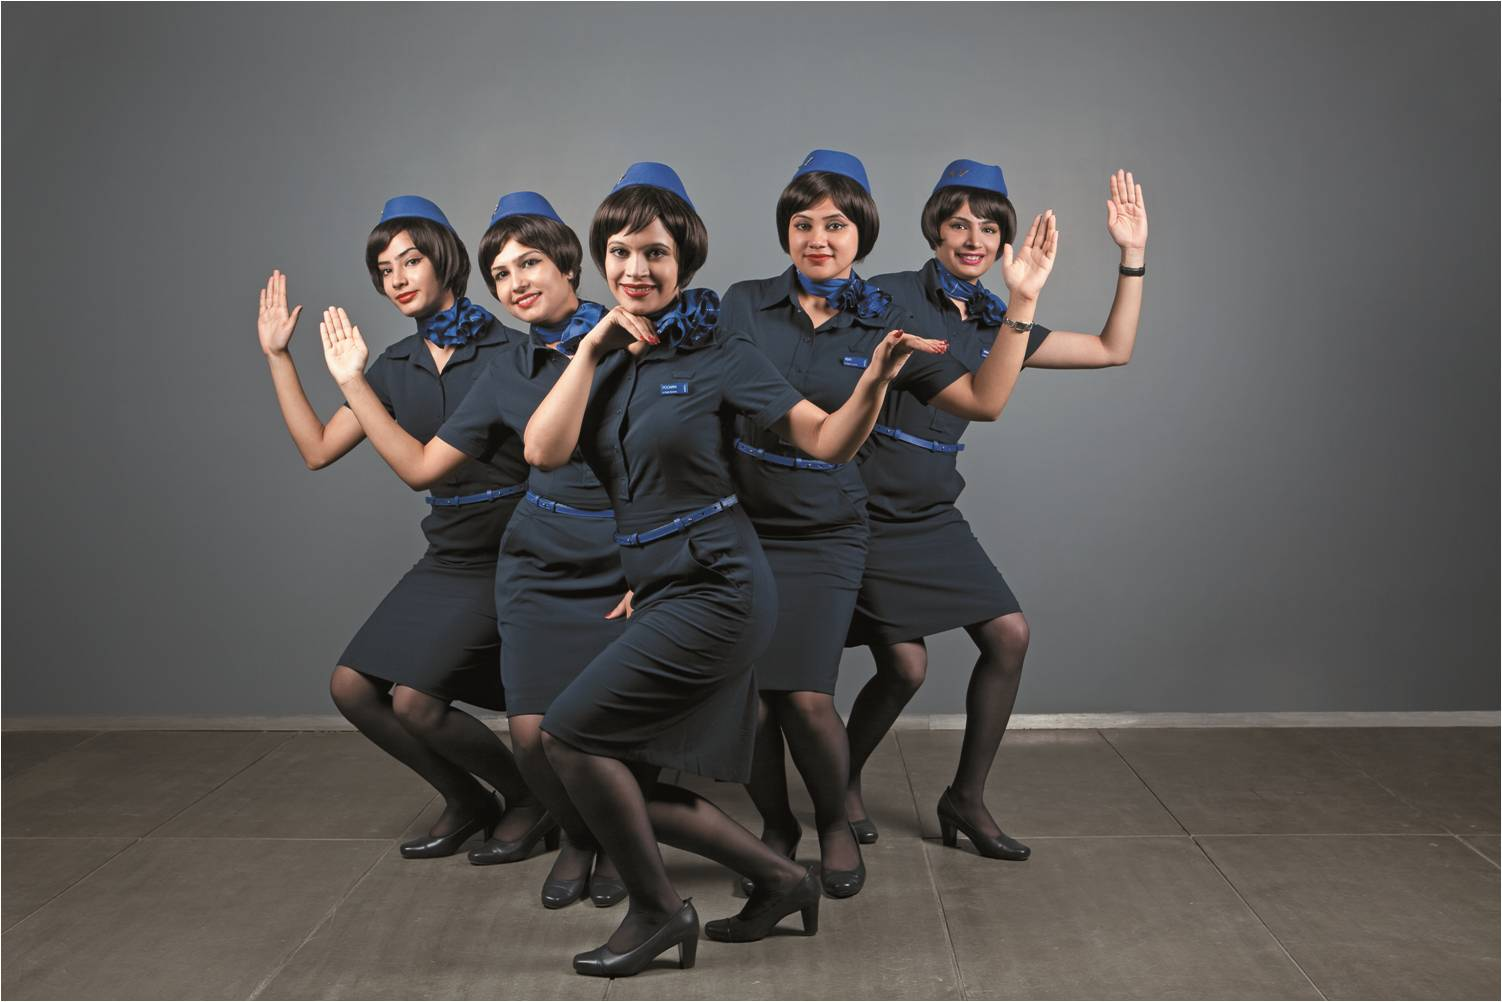 IndiGo goes for a chic and hot look in cabin crew makeover